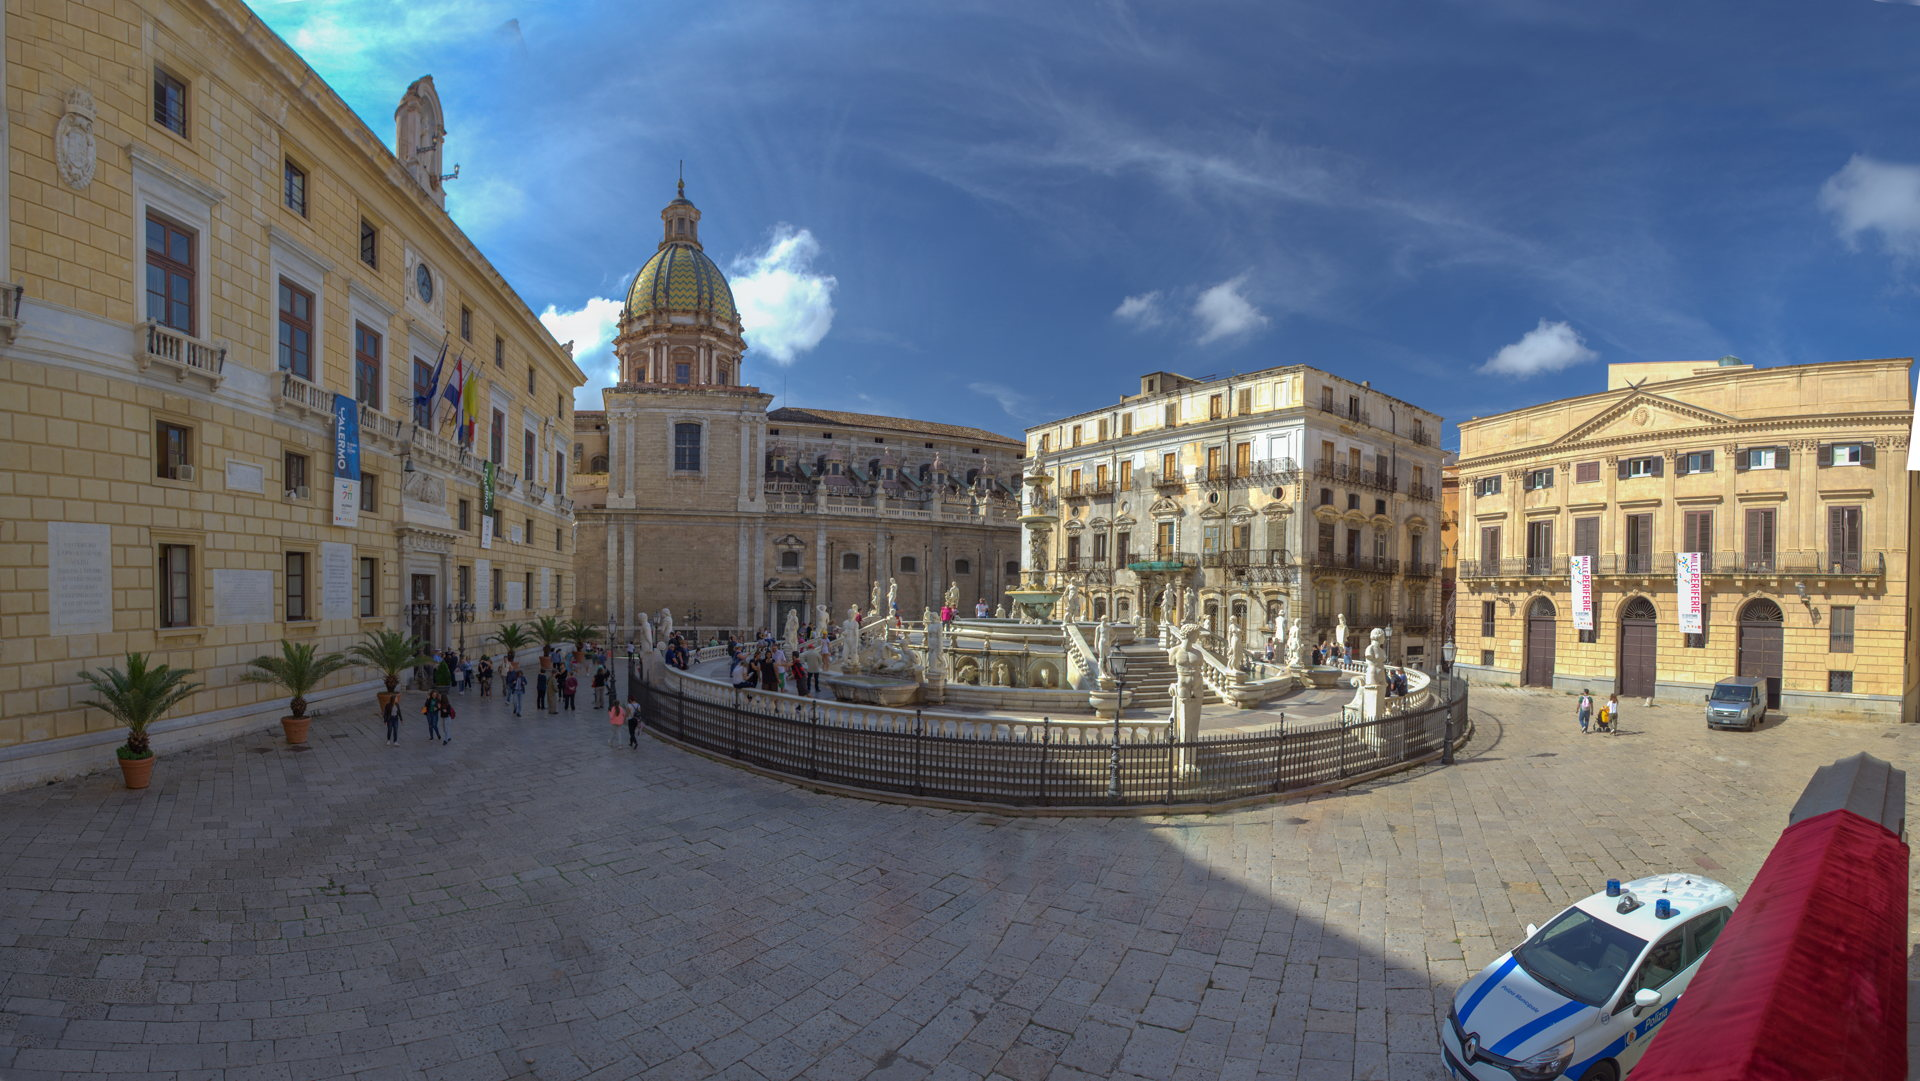 Piazza della vergogna, square of shame, palermo square, palermo naked, palermo statues, palermo travel, best places to visit in sicily, sicily, italy, europe, beautiful square in palermo, what to do in palermo, what to do in sicily